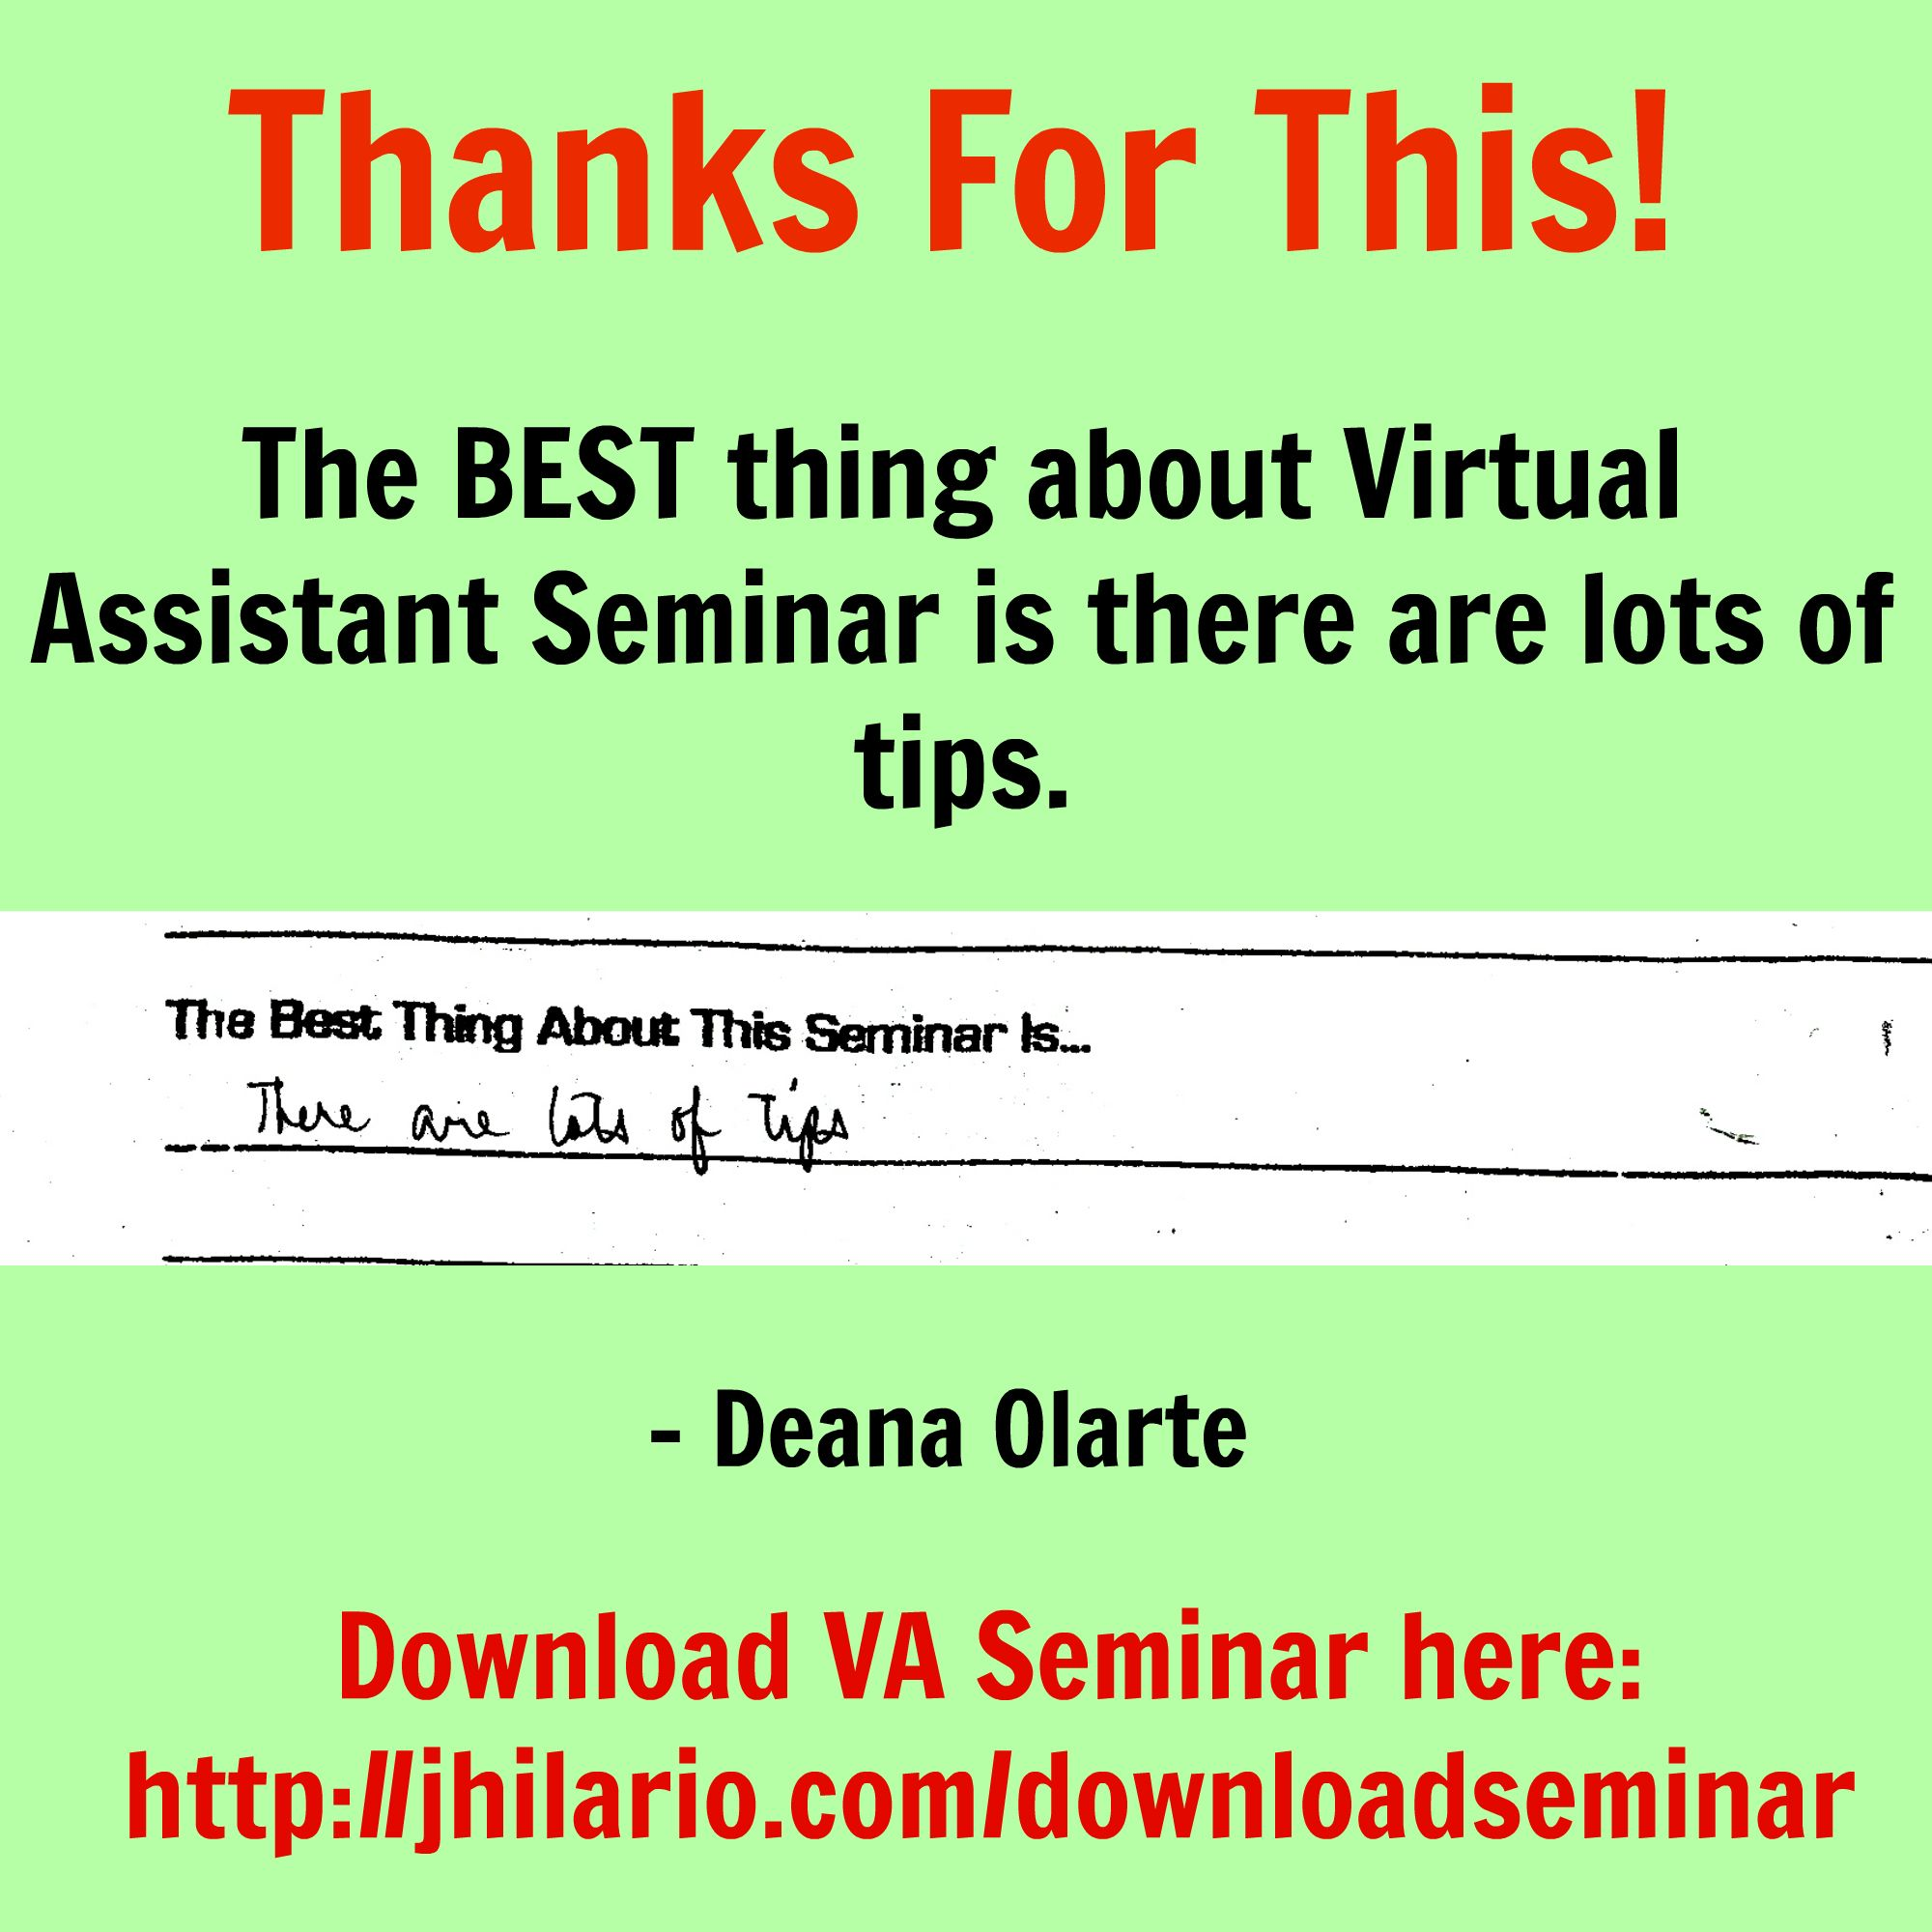 Here's Deana Olarte, an attendee telling the best thing about VA seminar.